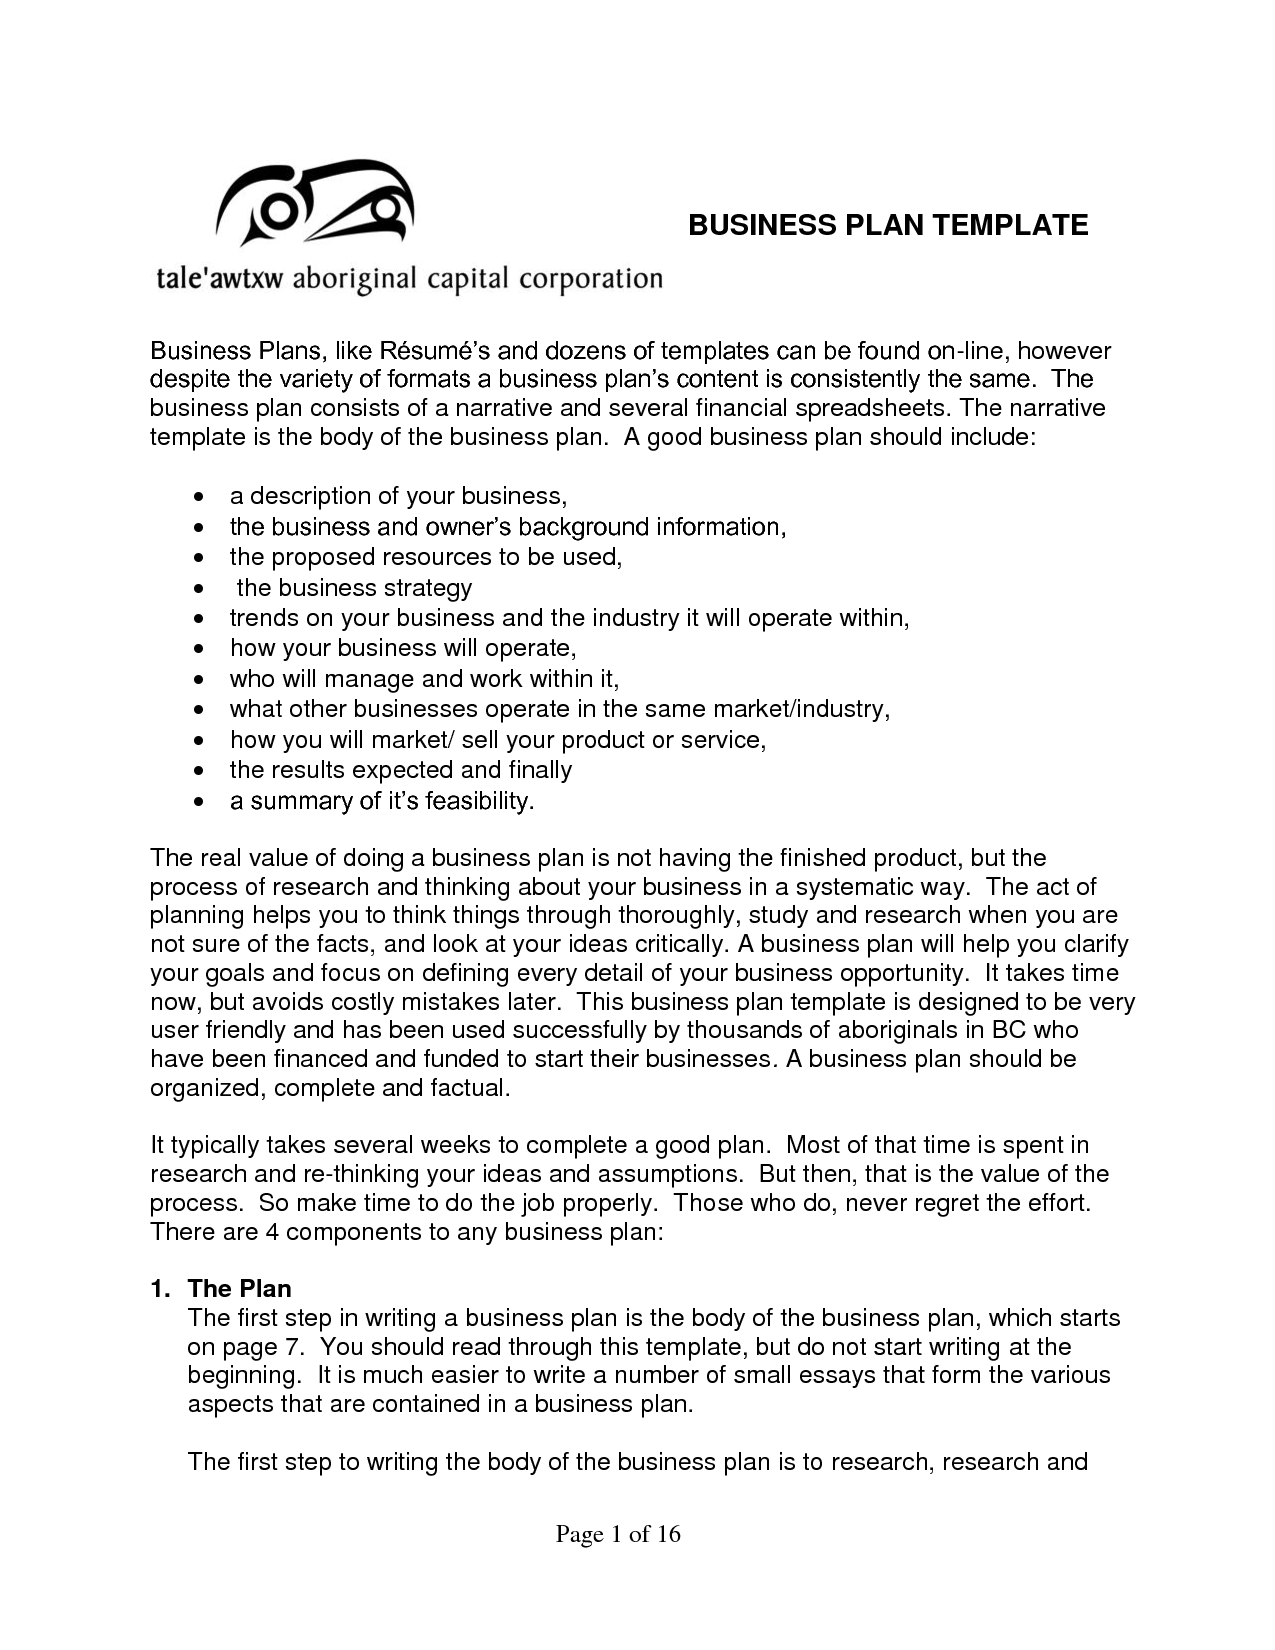 Business plan in education pdf - International Admissions – Higher